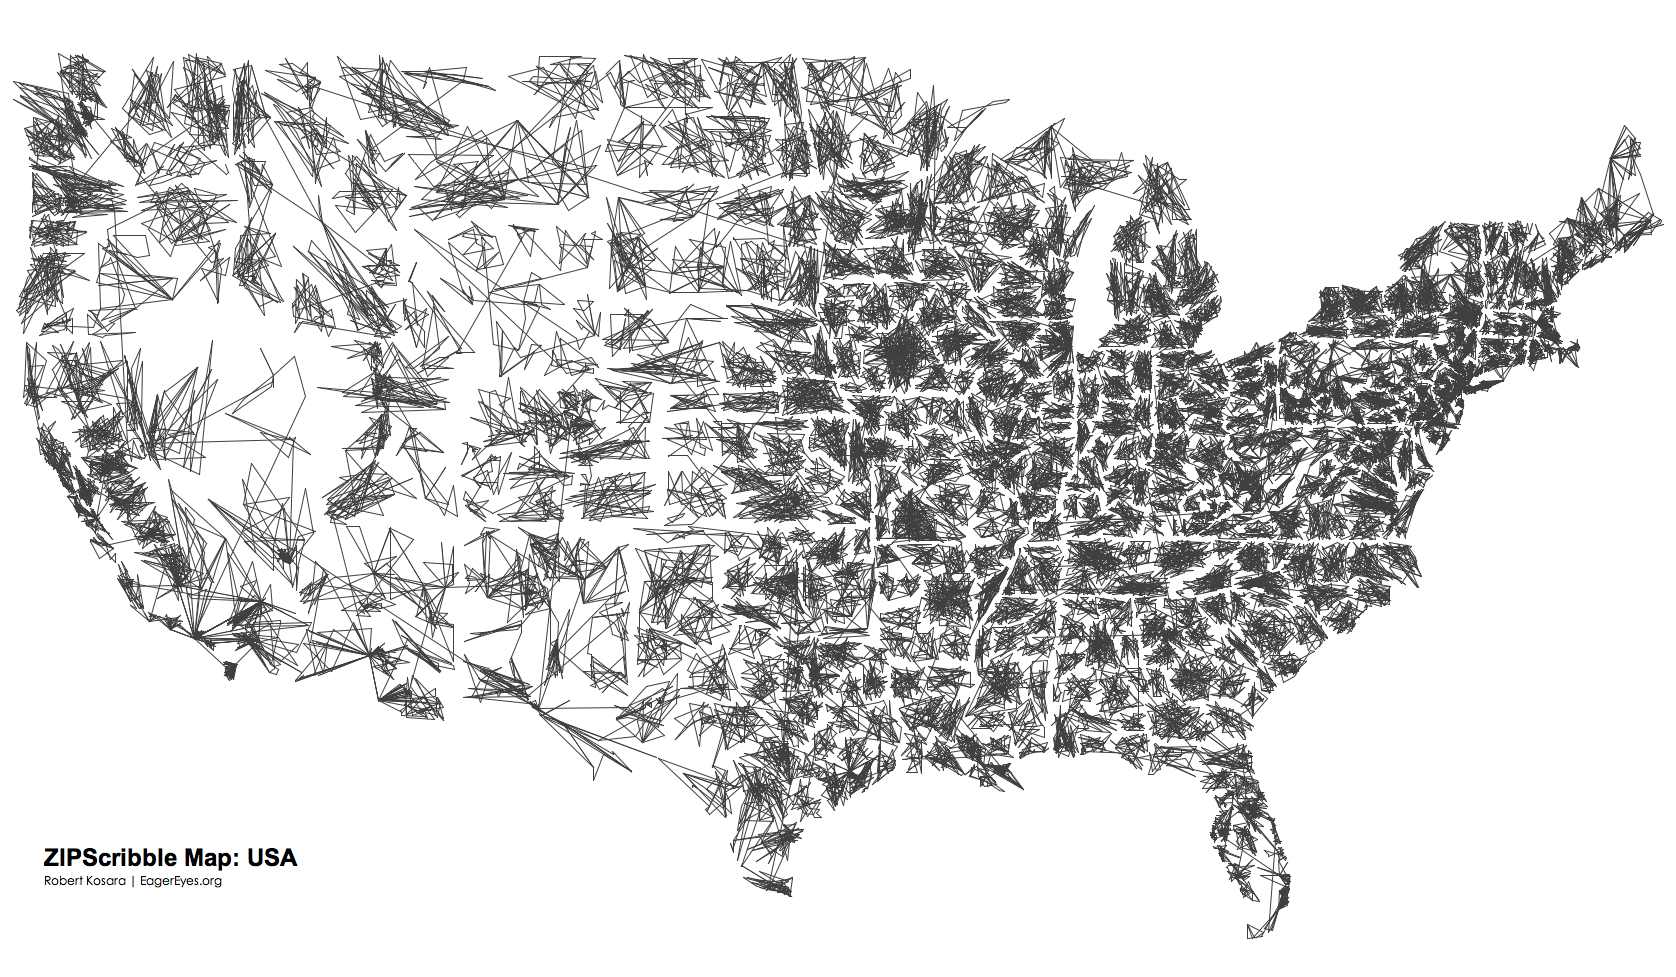 USA Zip Code And State Maps From Illinois To Missouri USA Zip - Us county map pdf